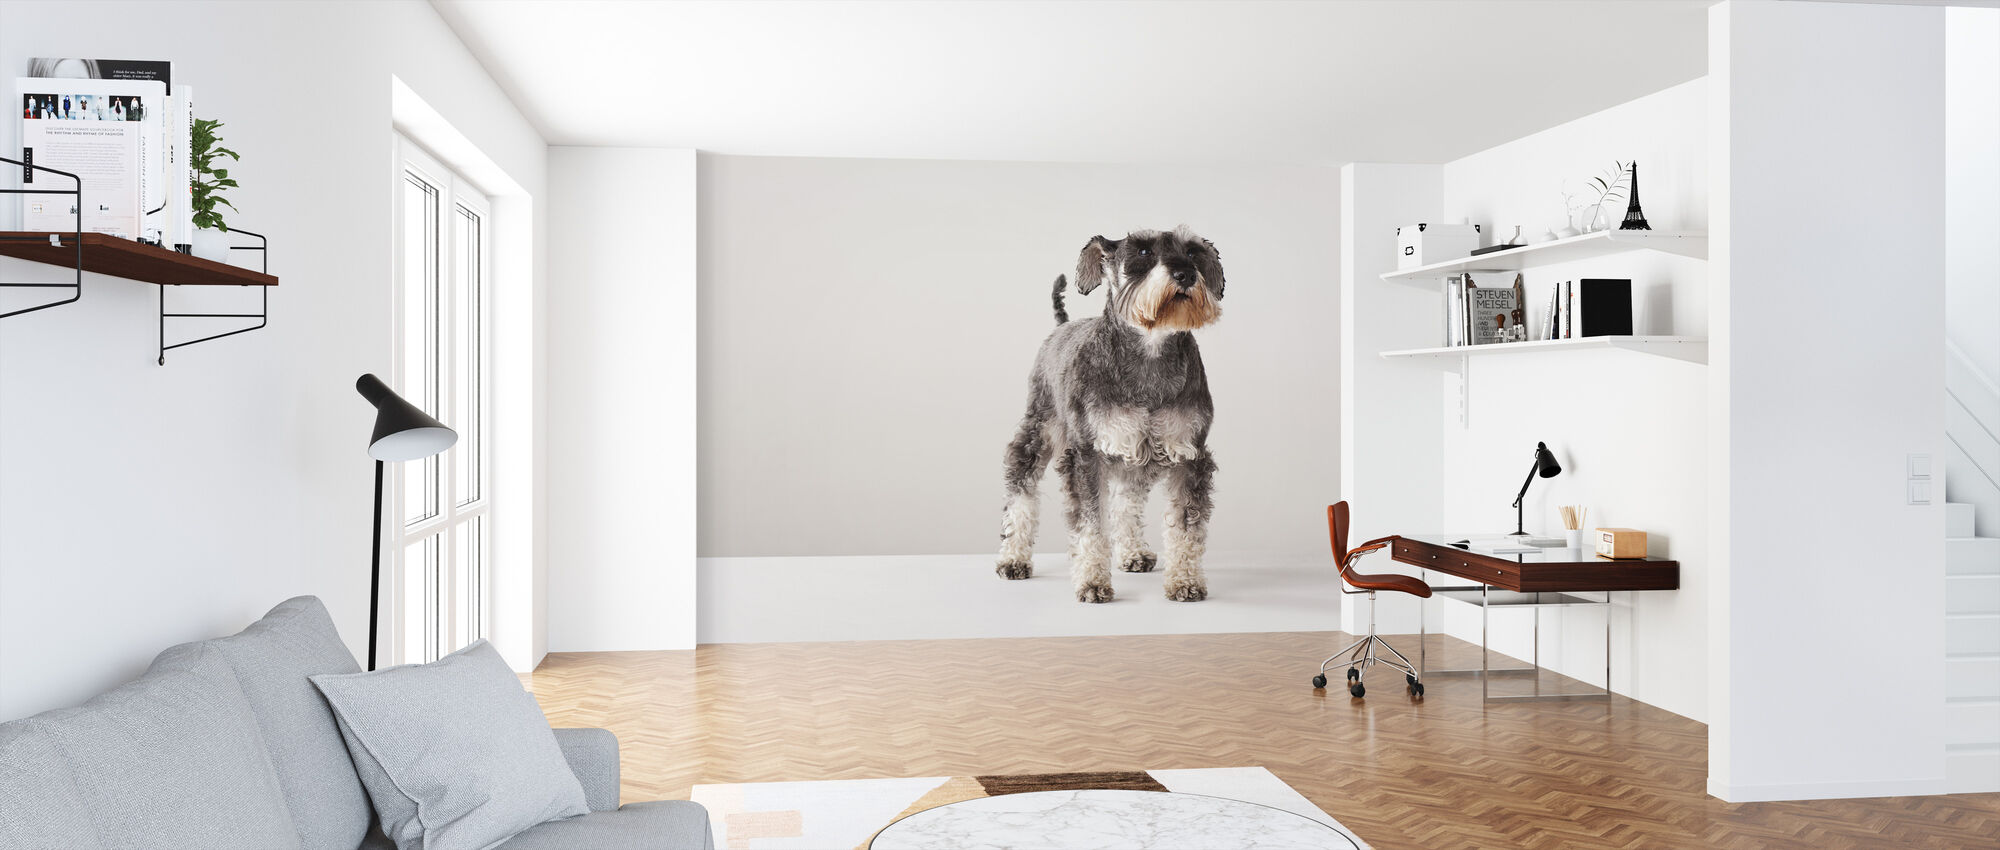 Schnauzer - Wallpaper - Office